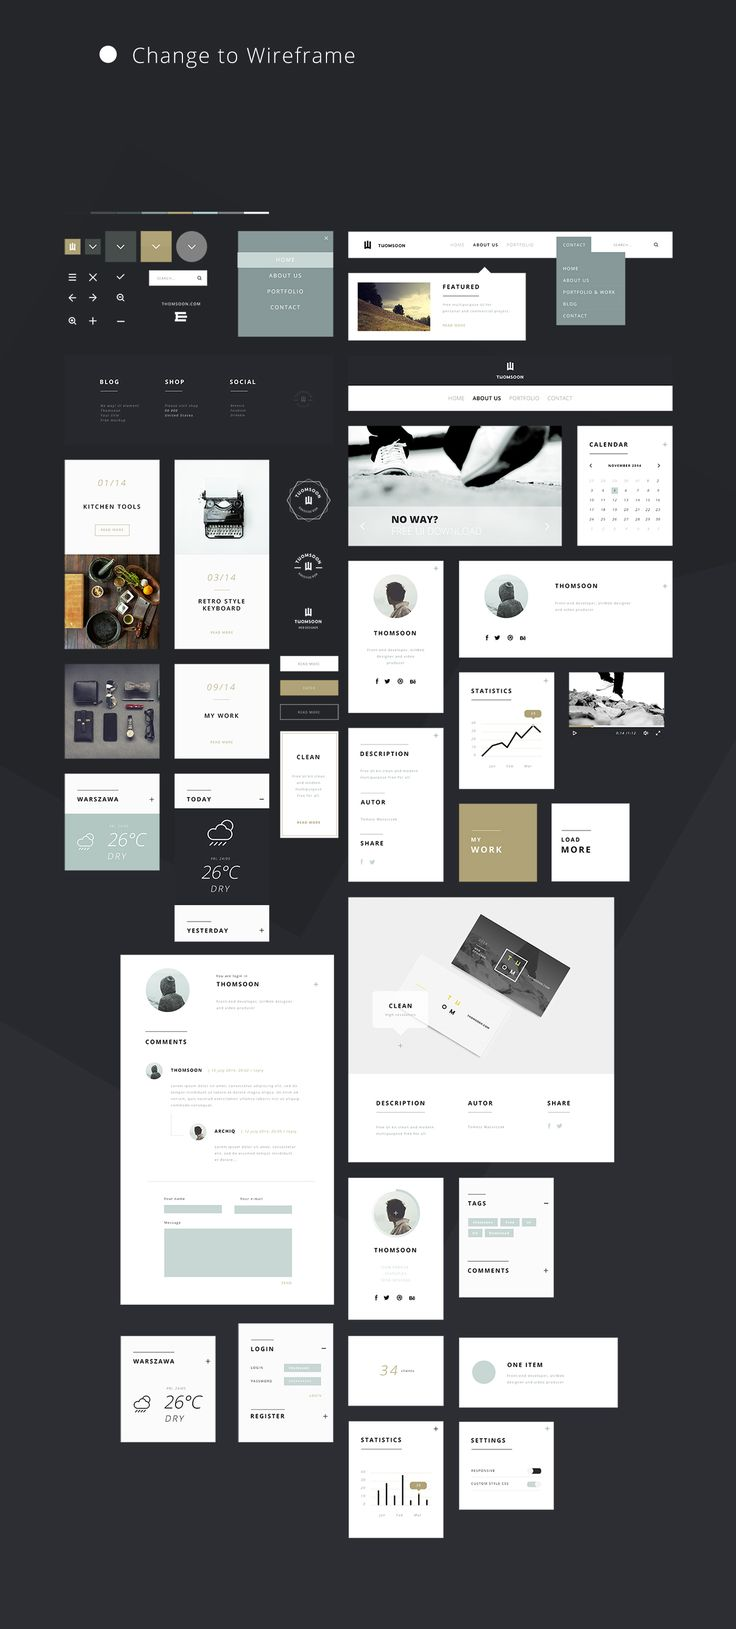 55+ Free elements UI KIT For personal and commercial use